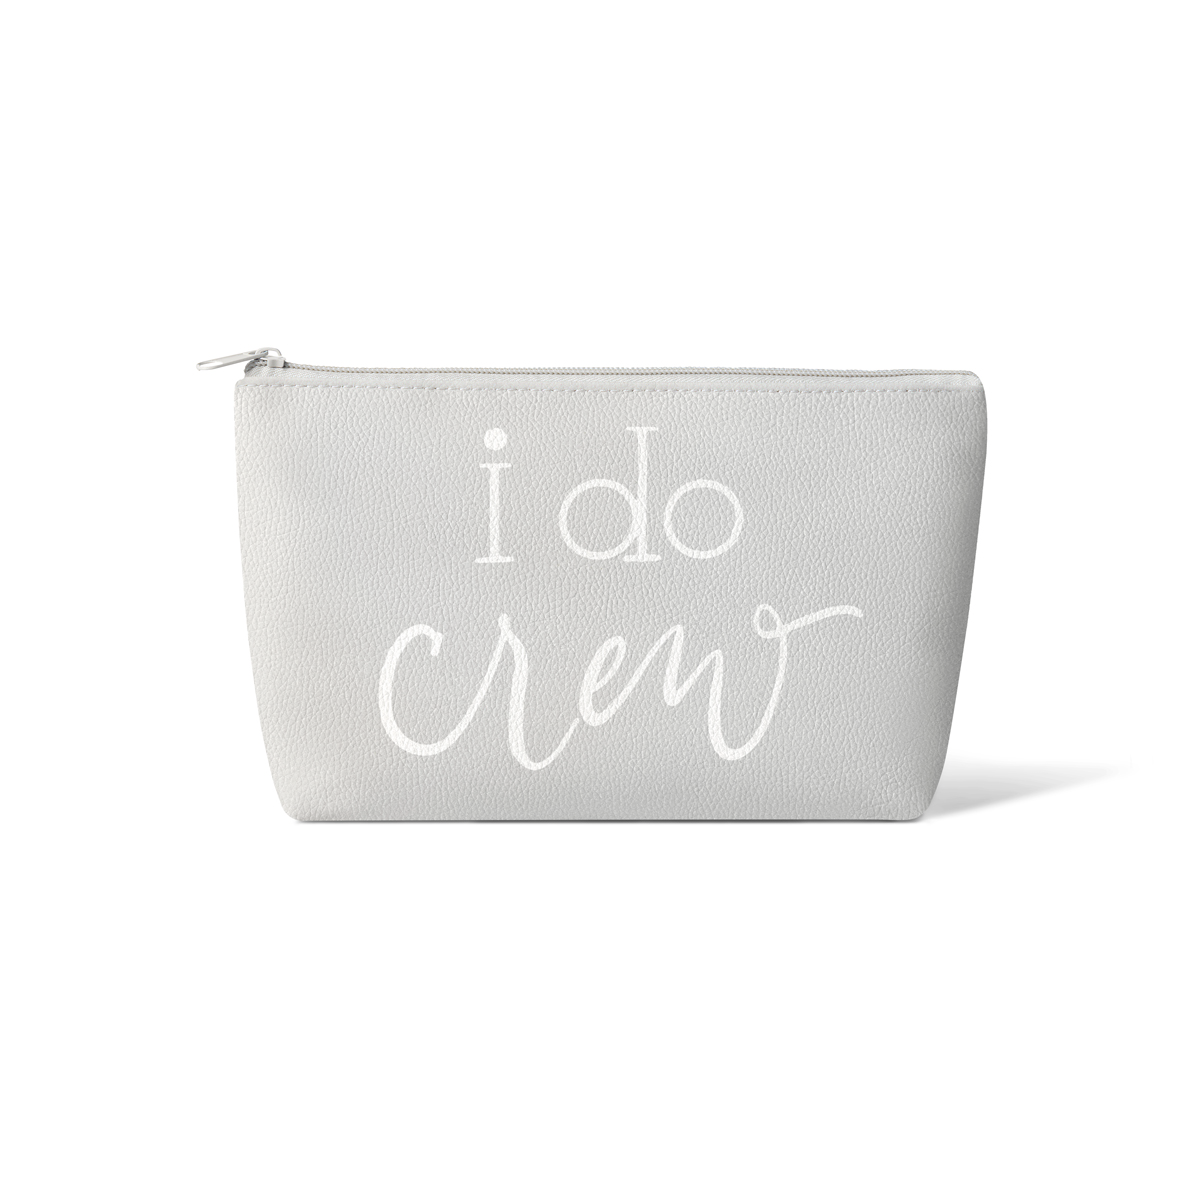 Grey I Do Crew Faux Leather Makeup Bags